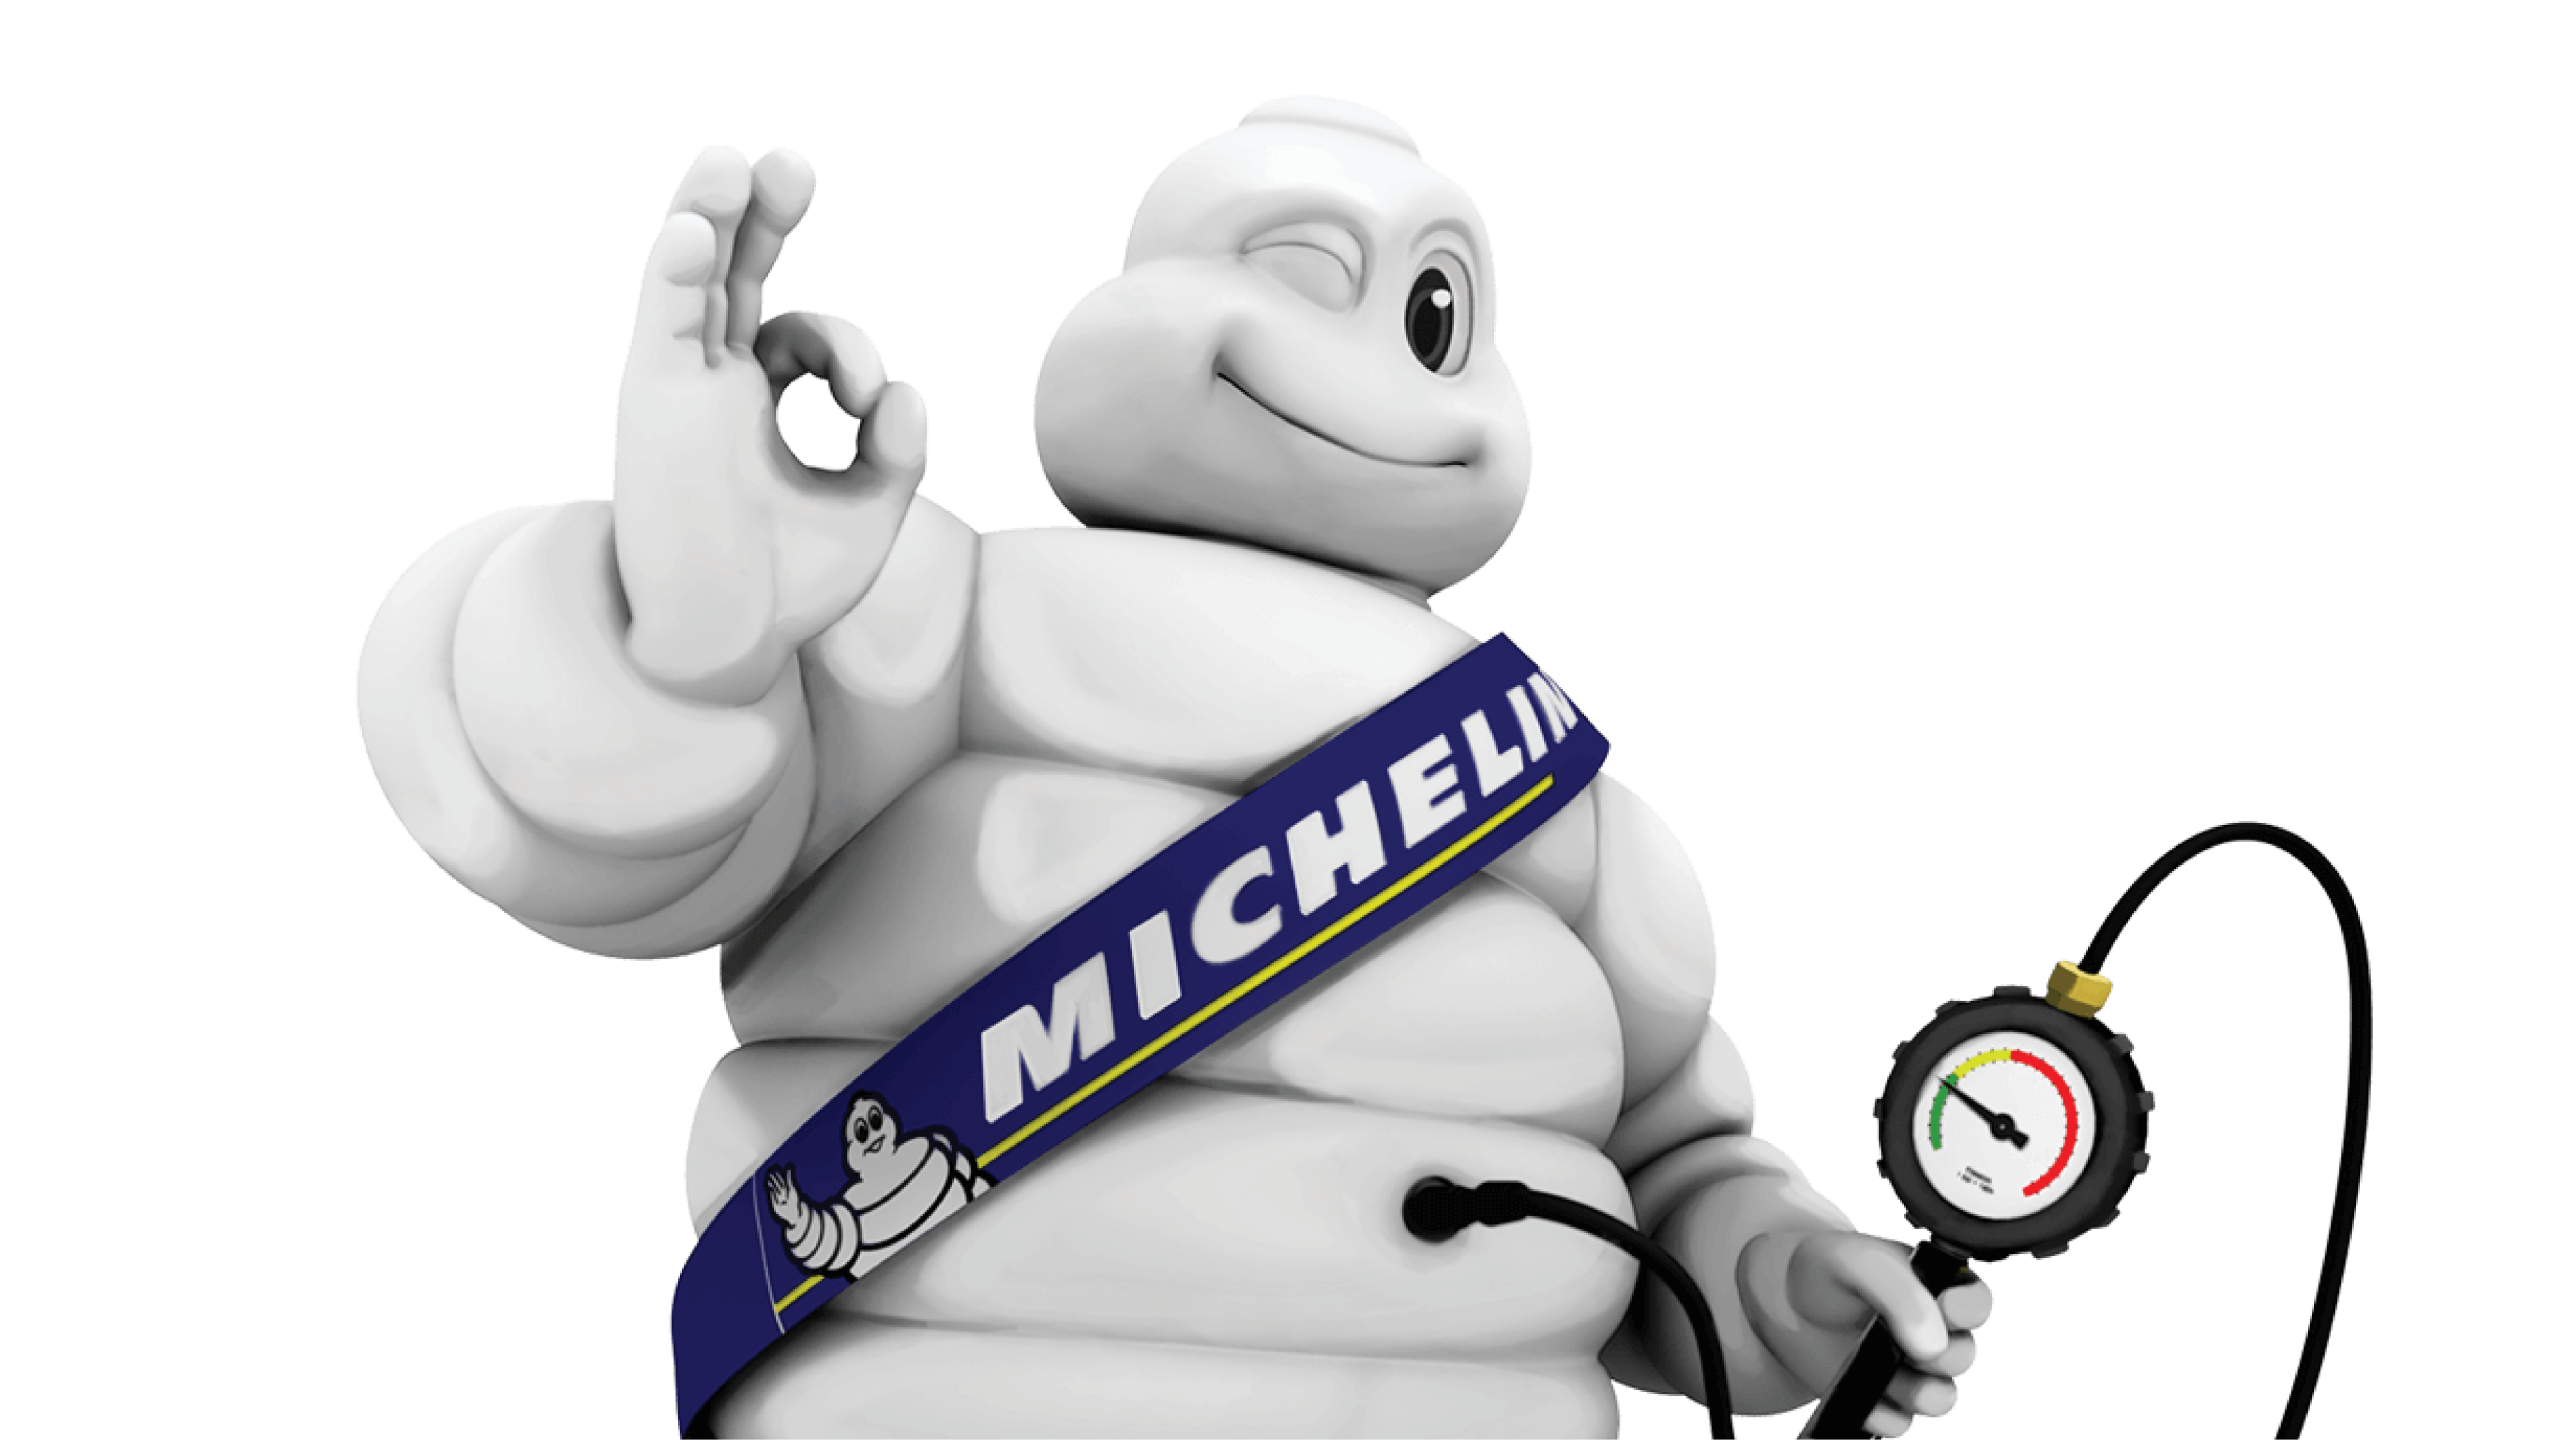 What You Know Michelin for Depends on Where You Live.